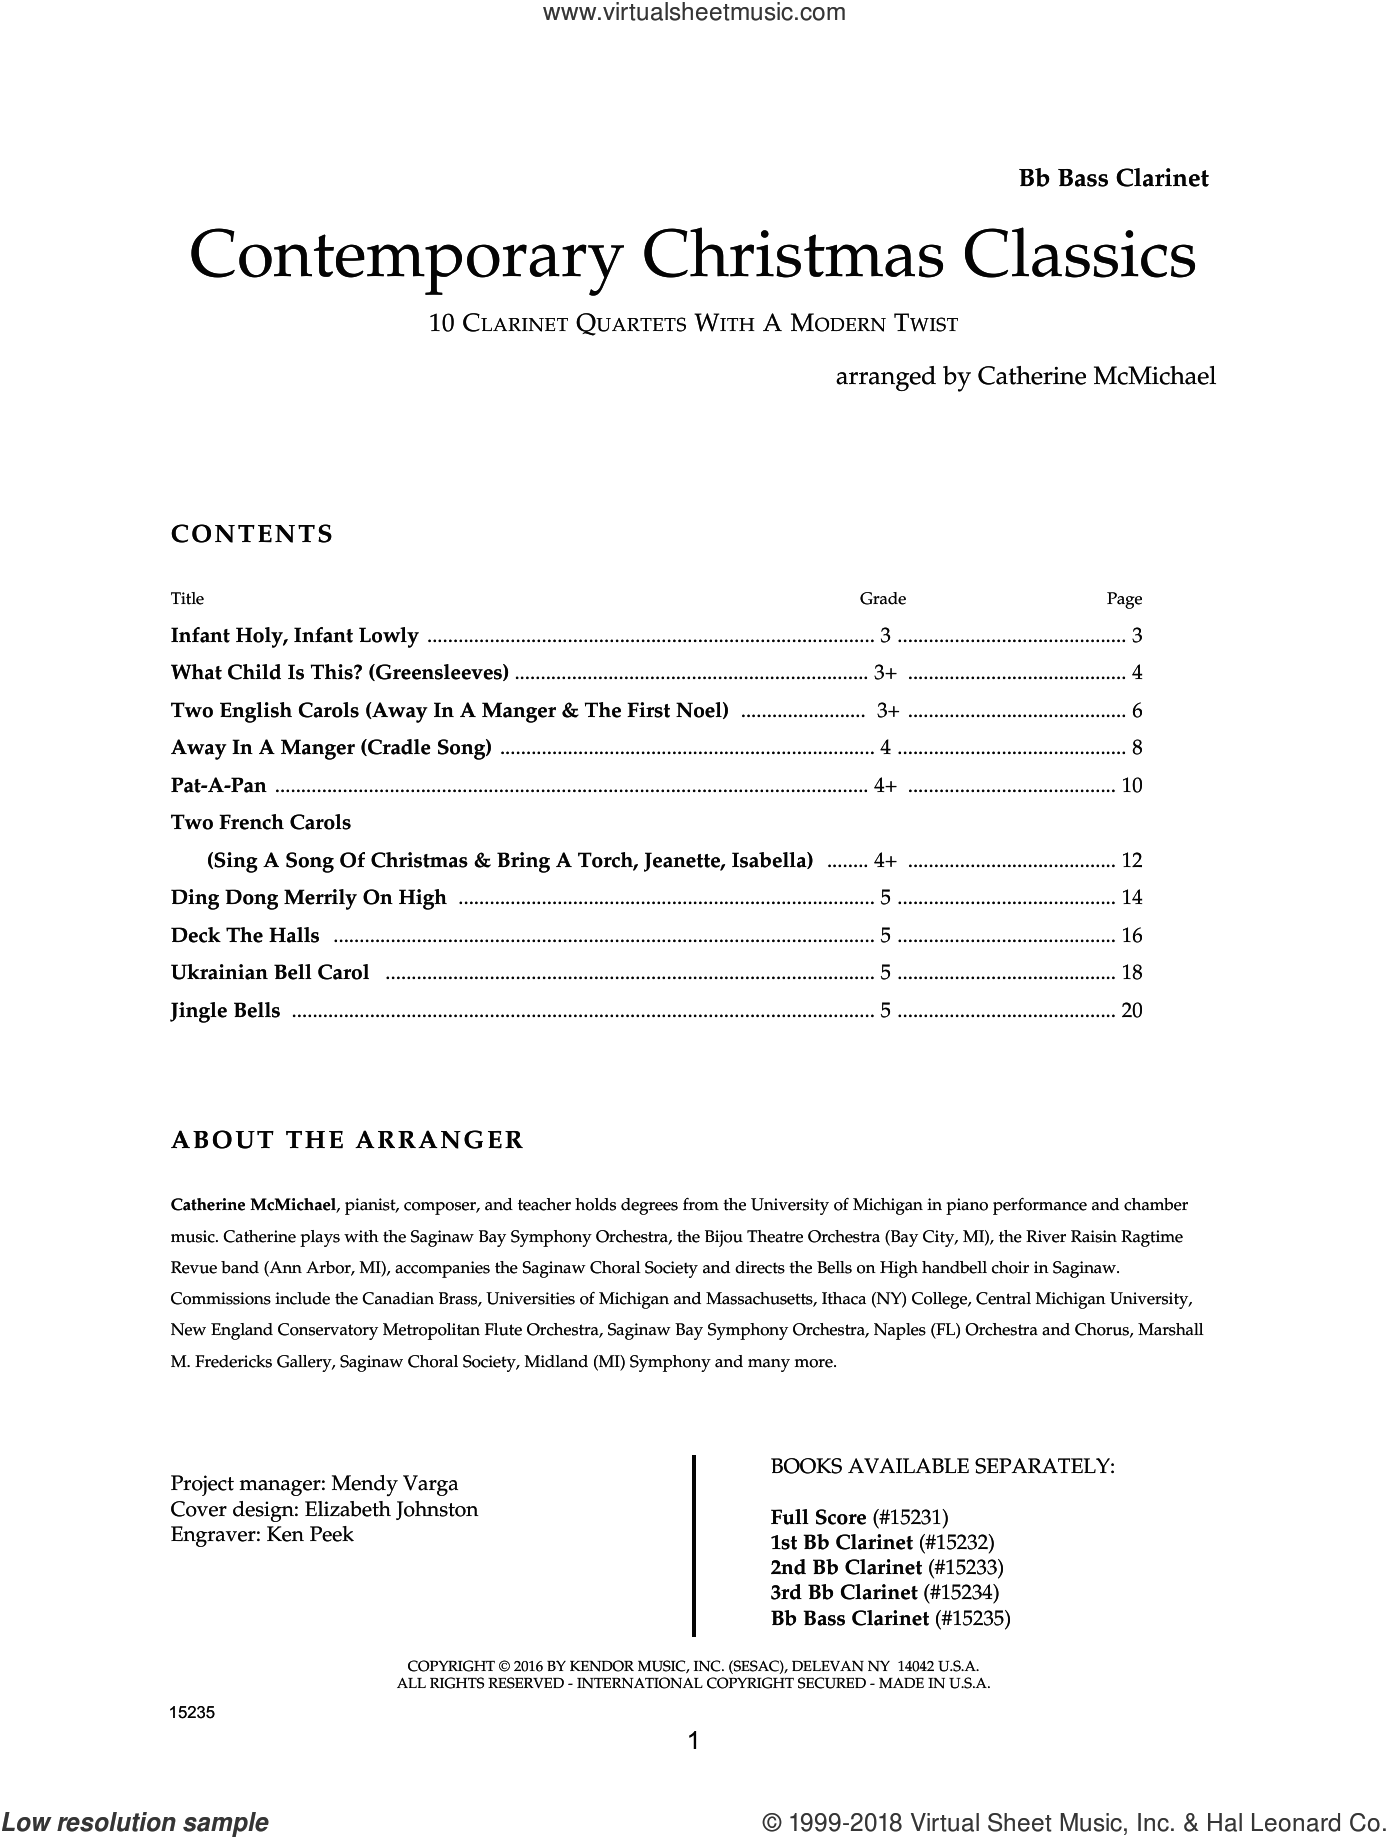 Contemporary Christmas Classics - Bb Bass Clarinet sheet music for clarinet quartet by Catherine McMichael, intermediate